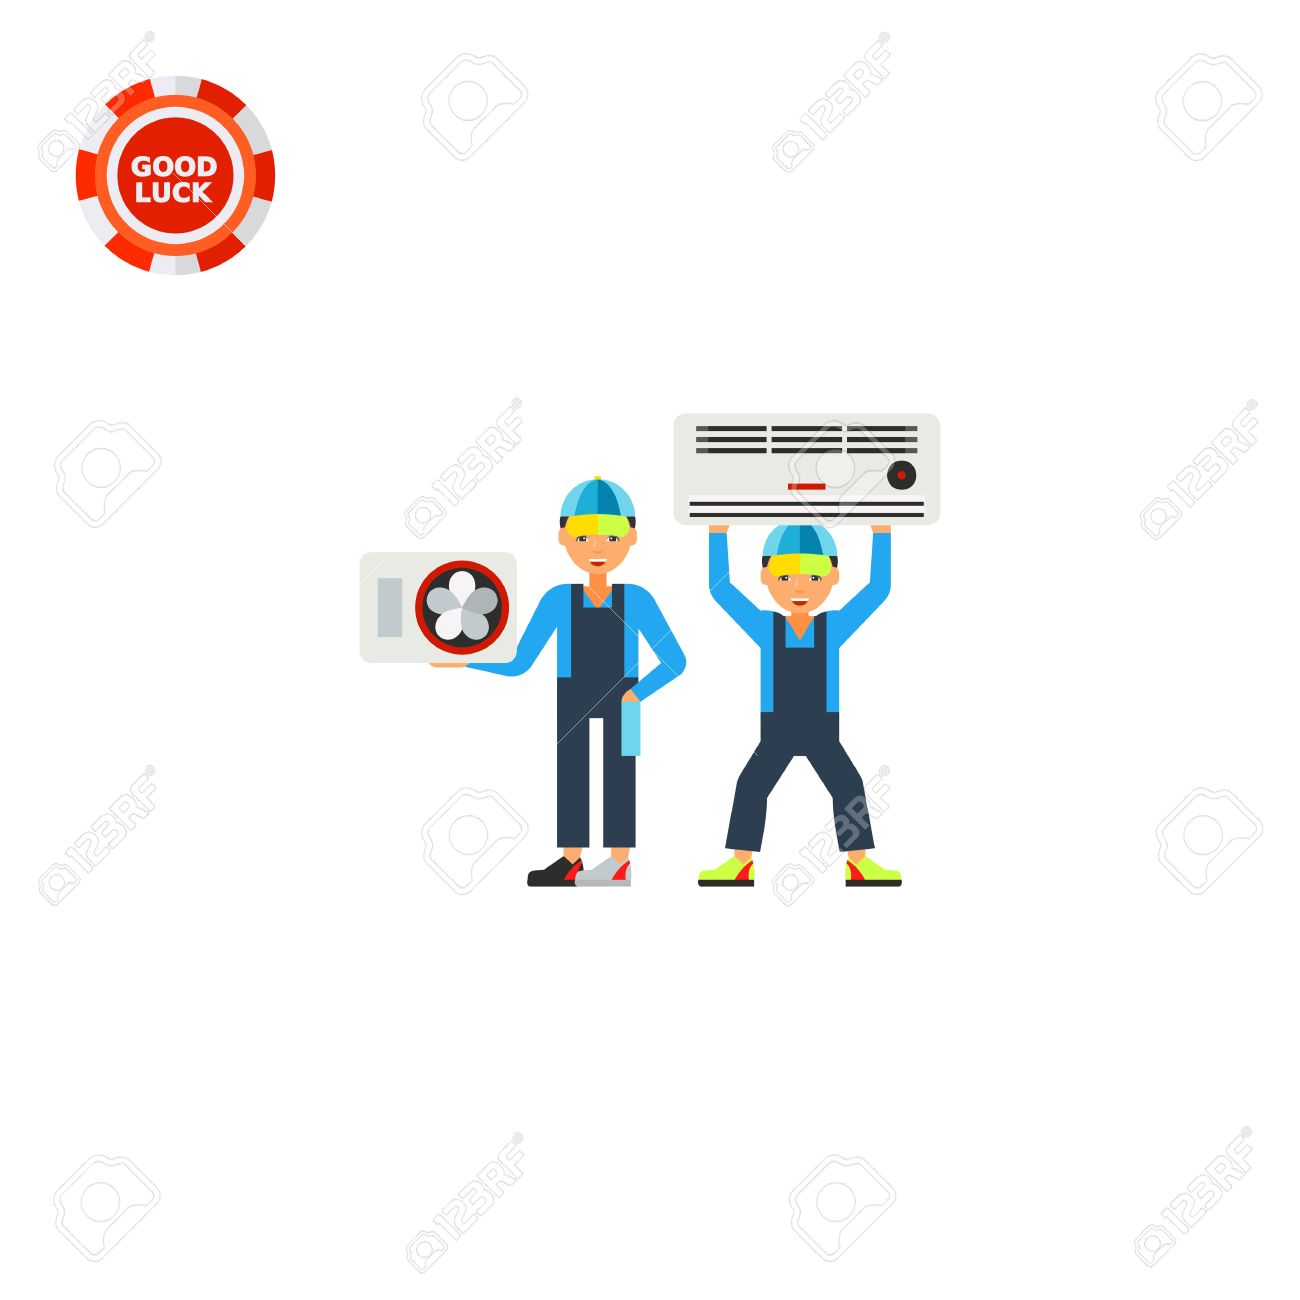 Klimaanlage Installieren Stock Photo